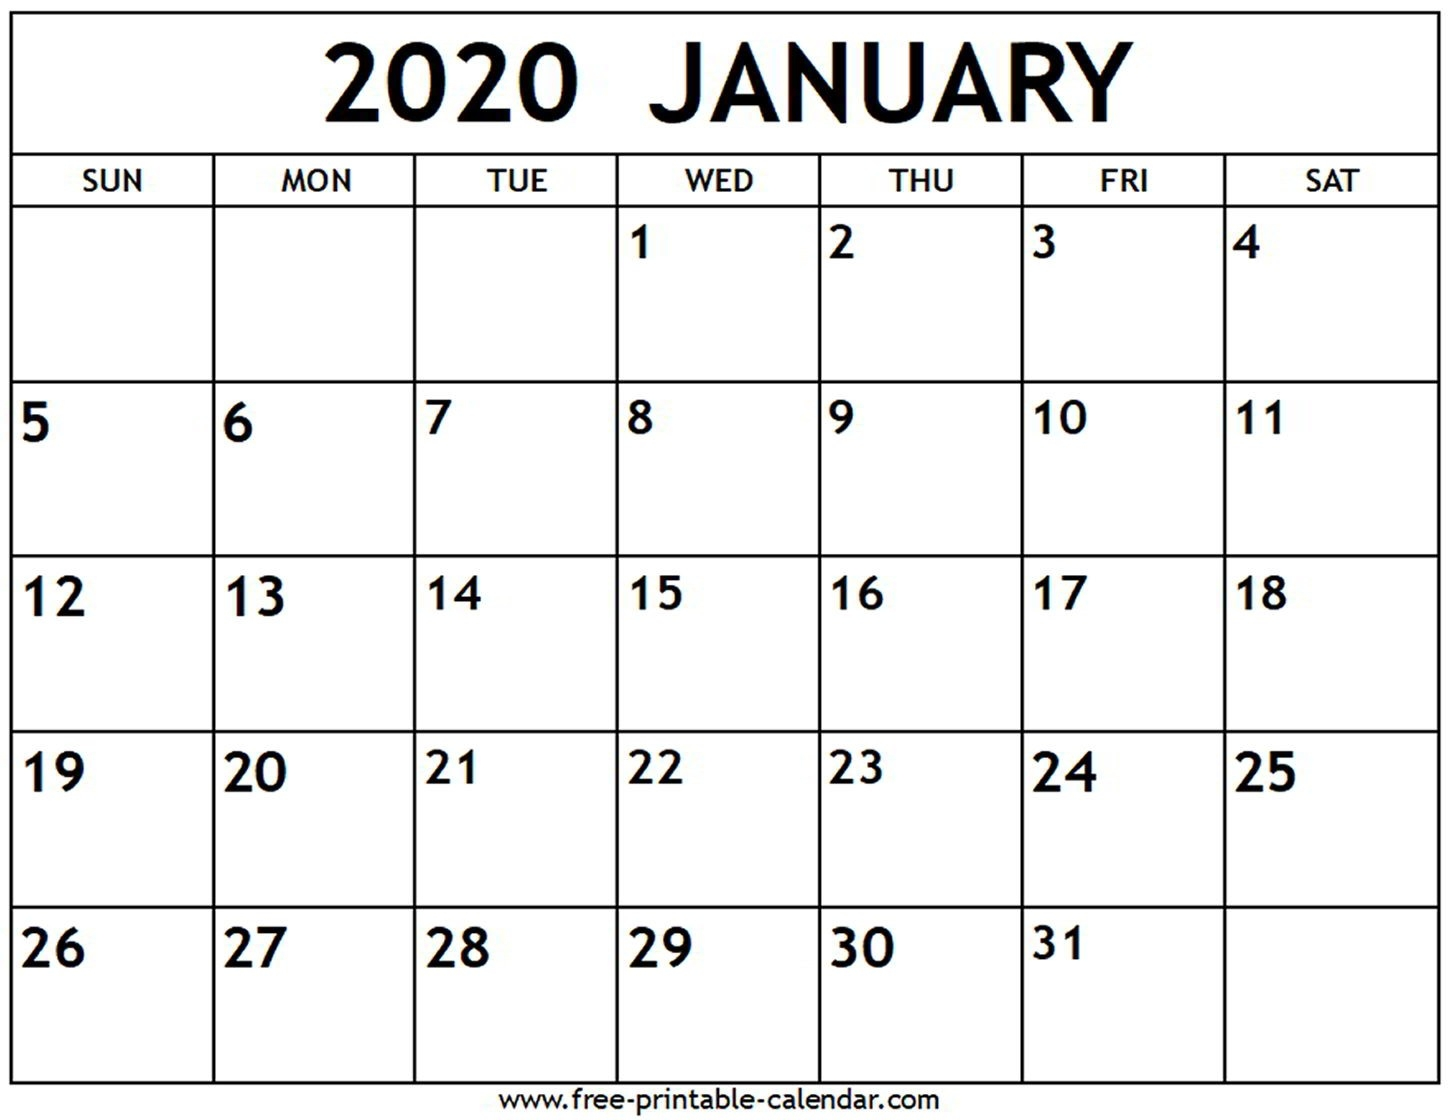 January 2020 Calendar - Free-Printable-Calendar-January 2020 Calendar Download